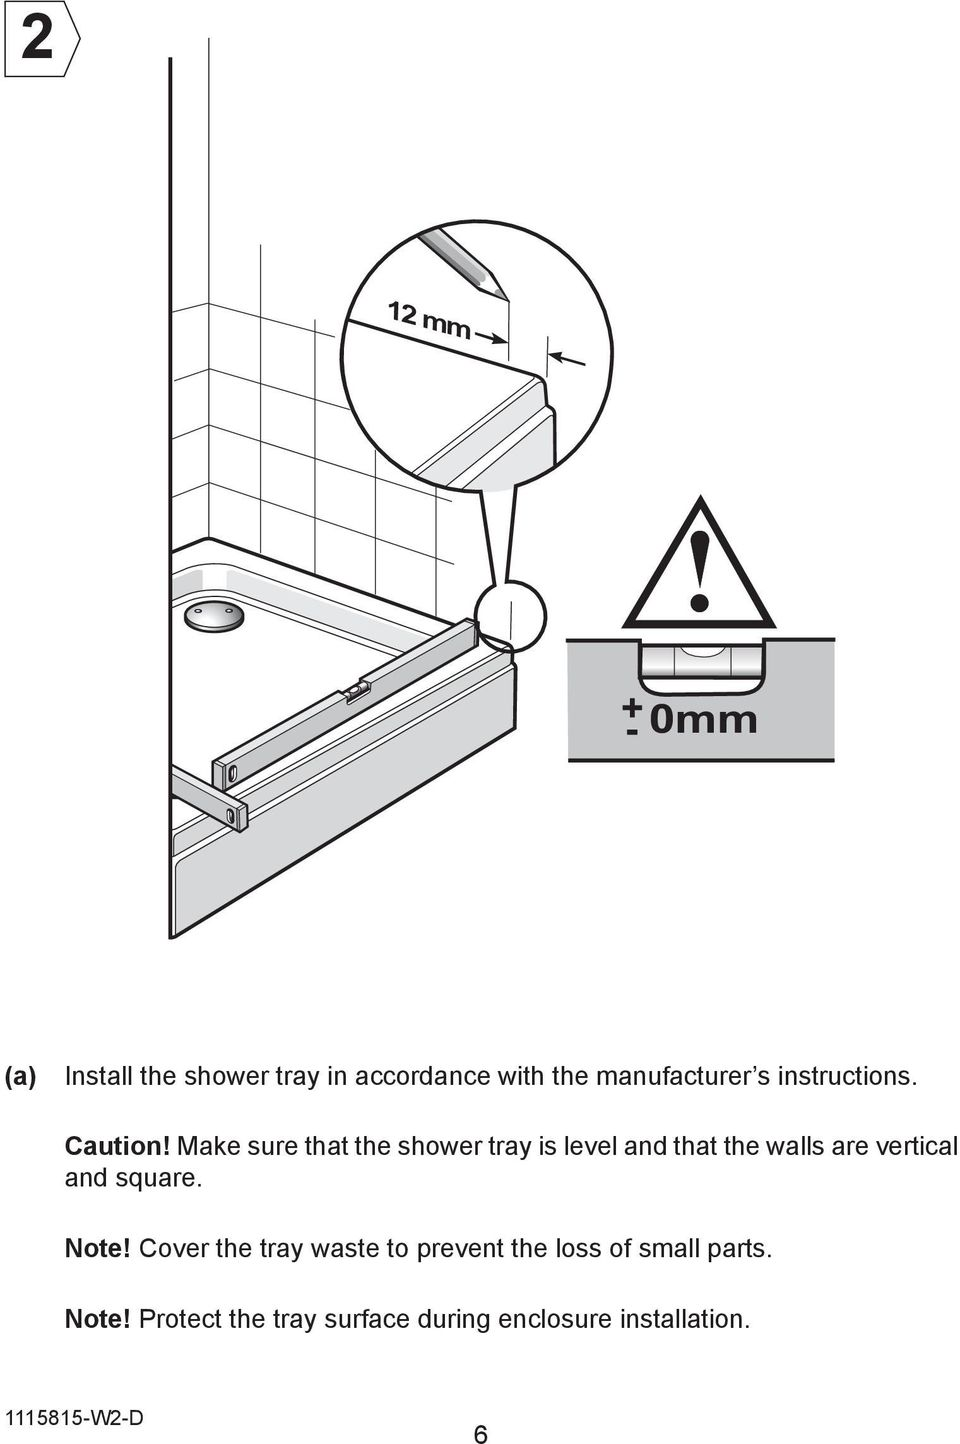 Make sure that the shower tray is level and that the walls are vertical and